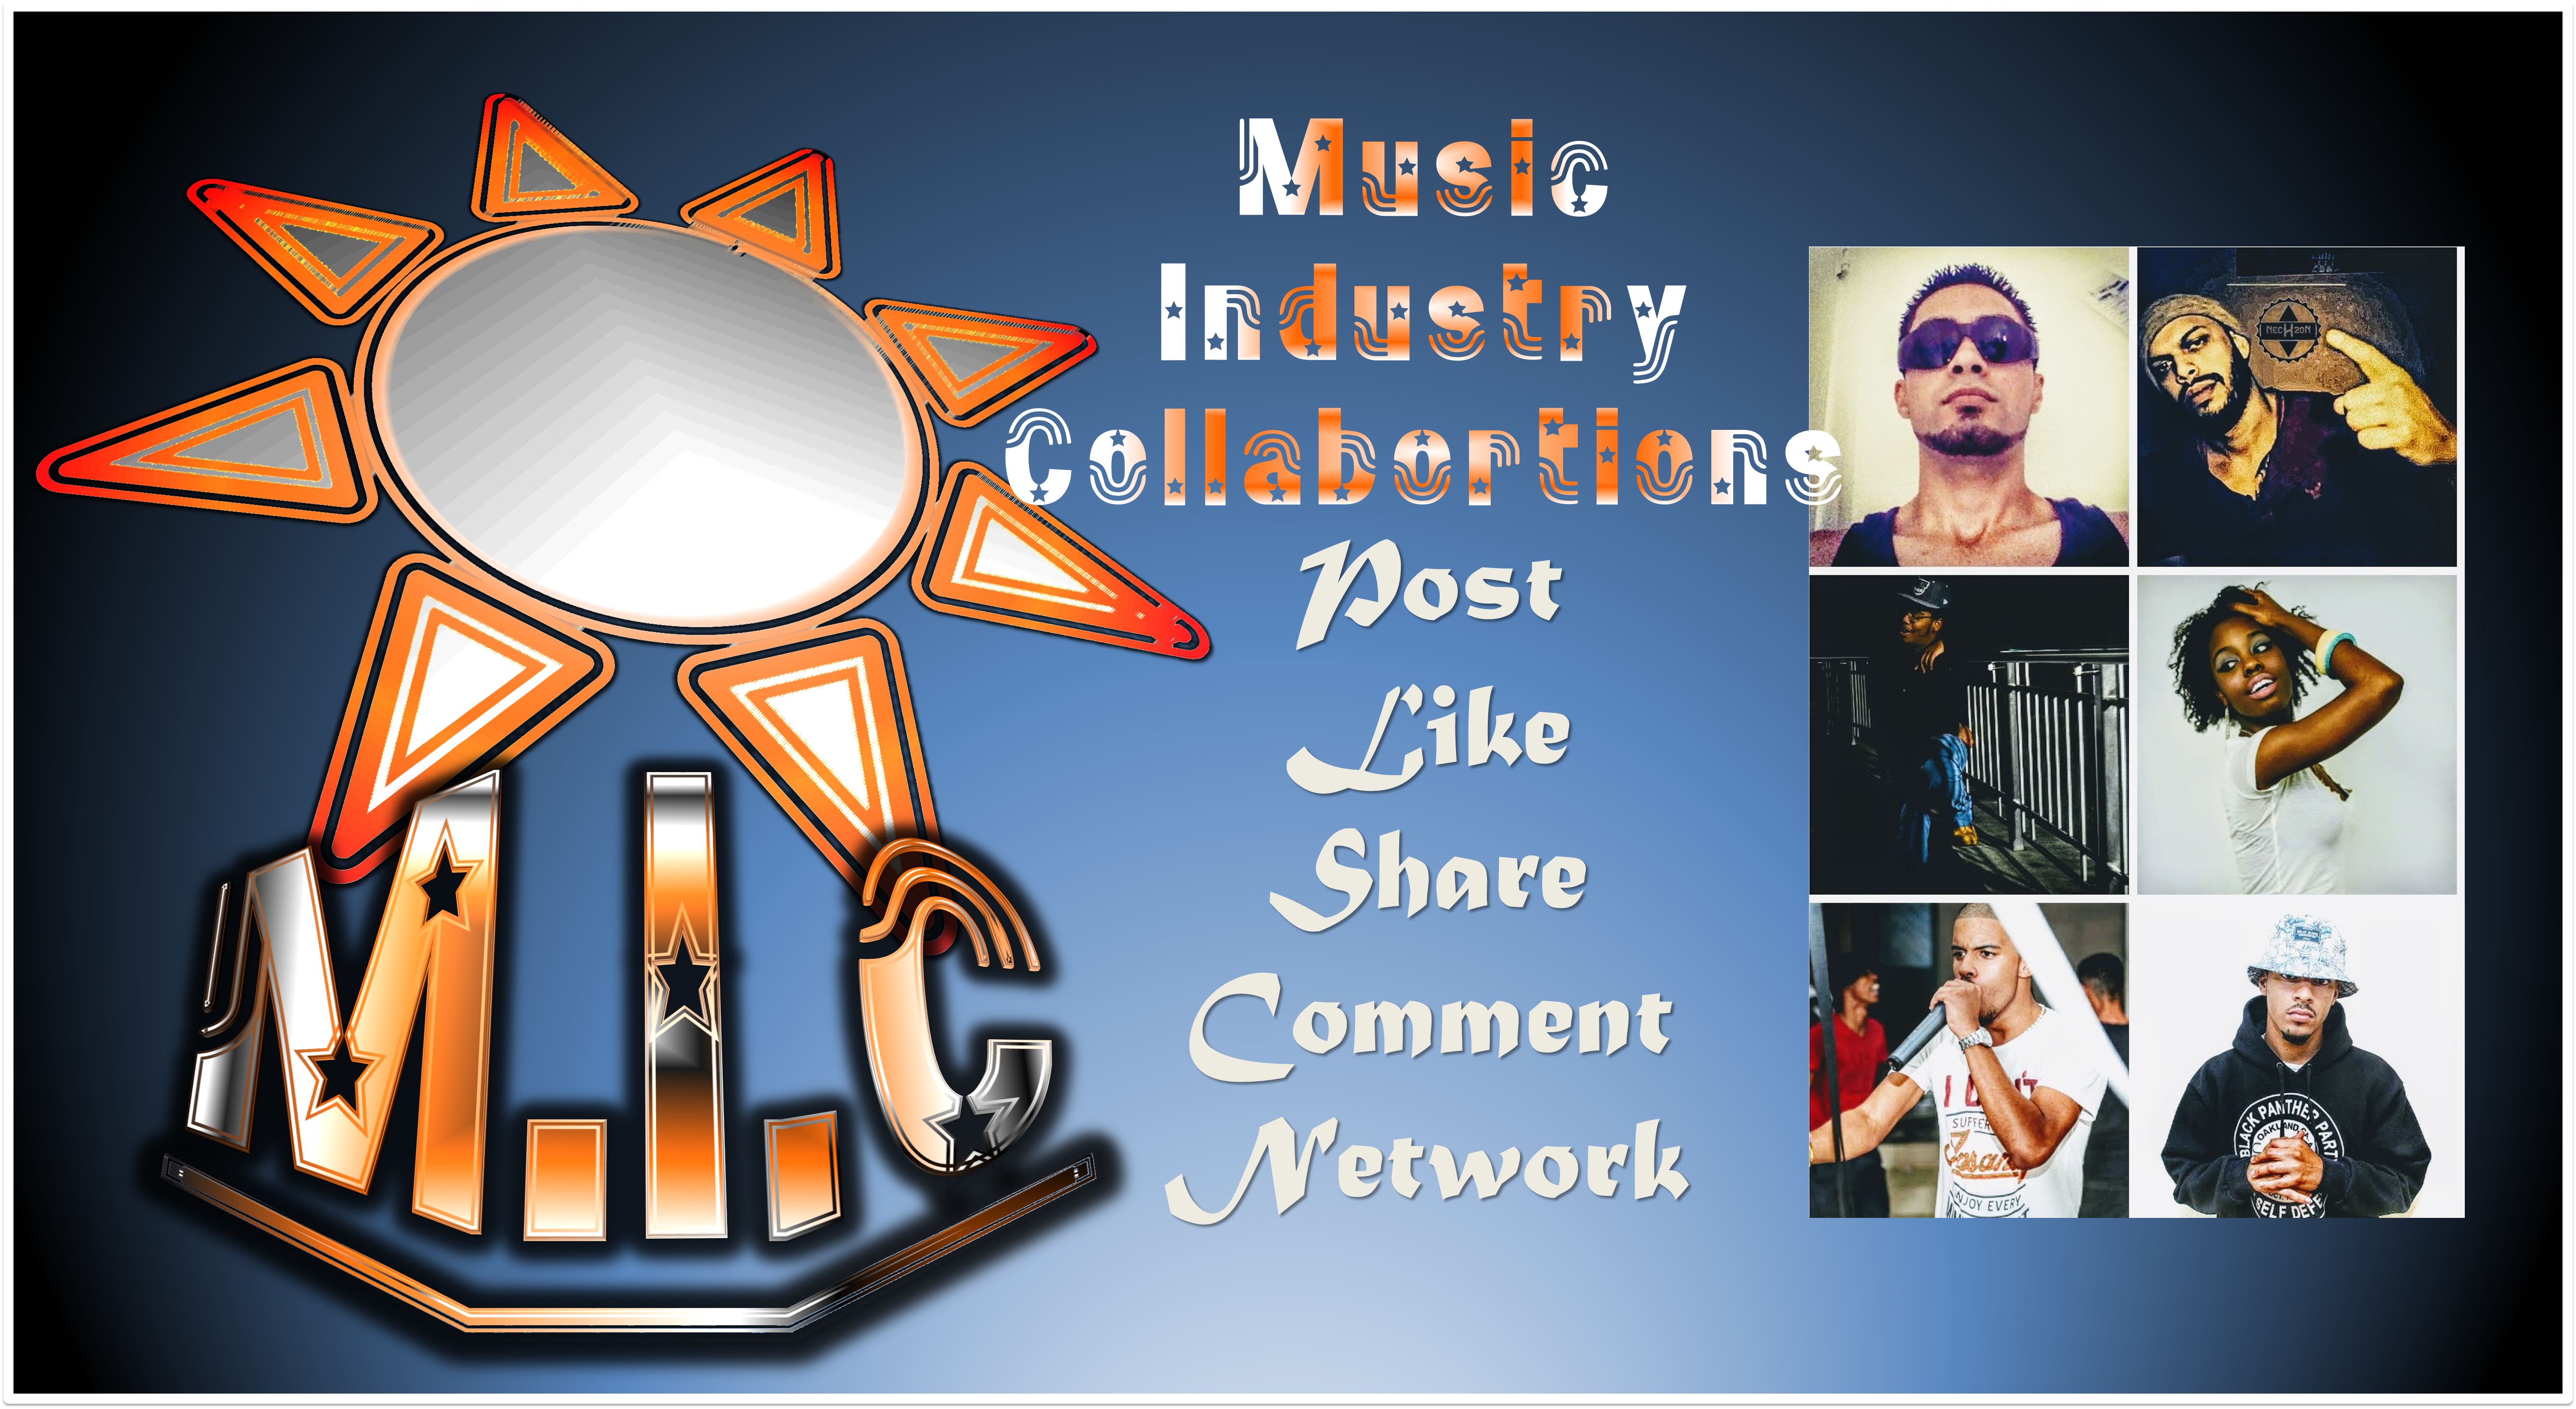 Music Industry Collaborations